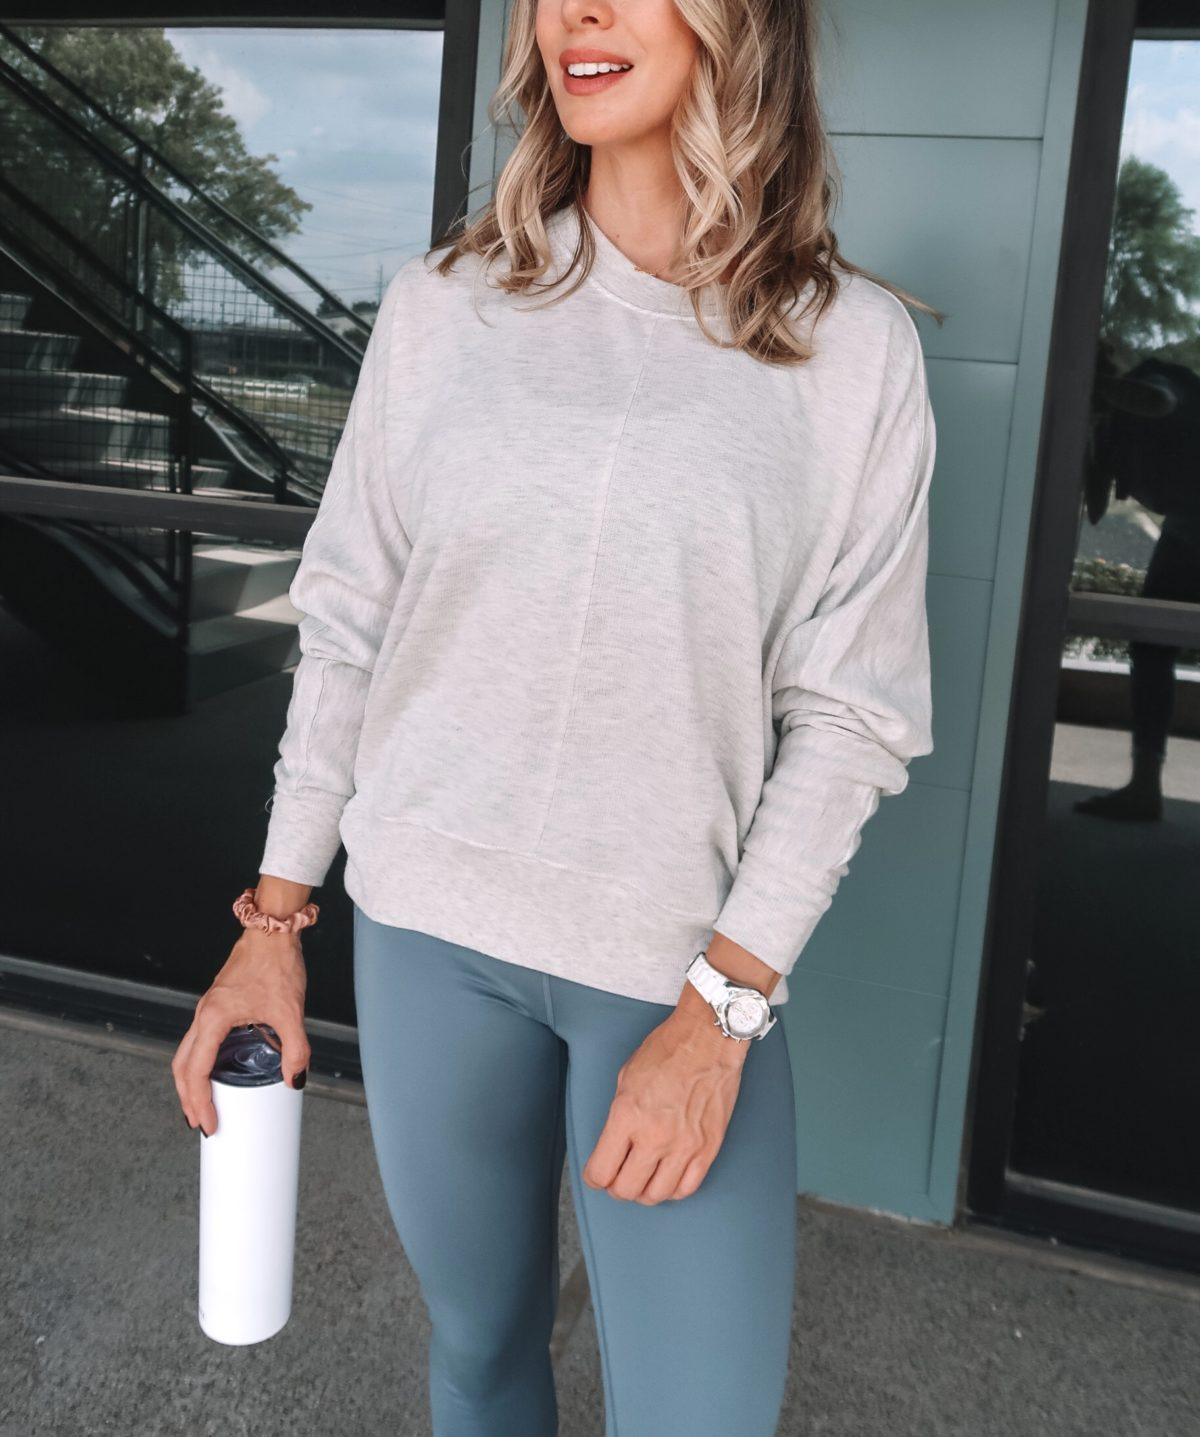 Fitness, Leggings, Sweatshirt, Shoes